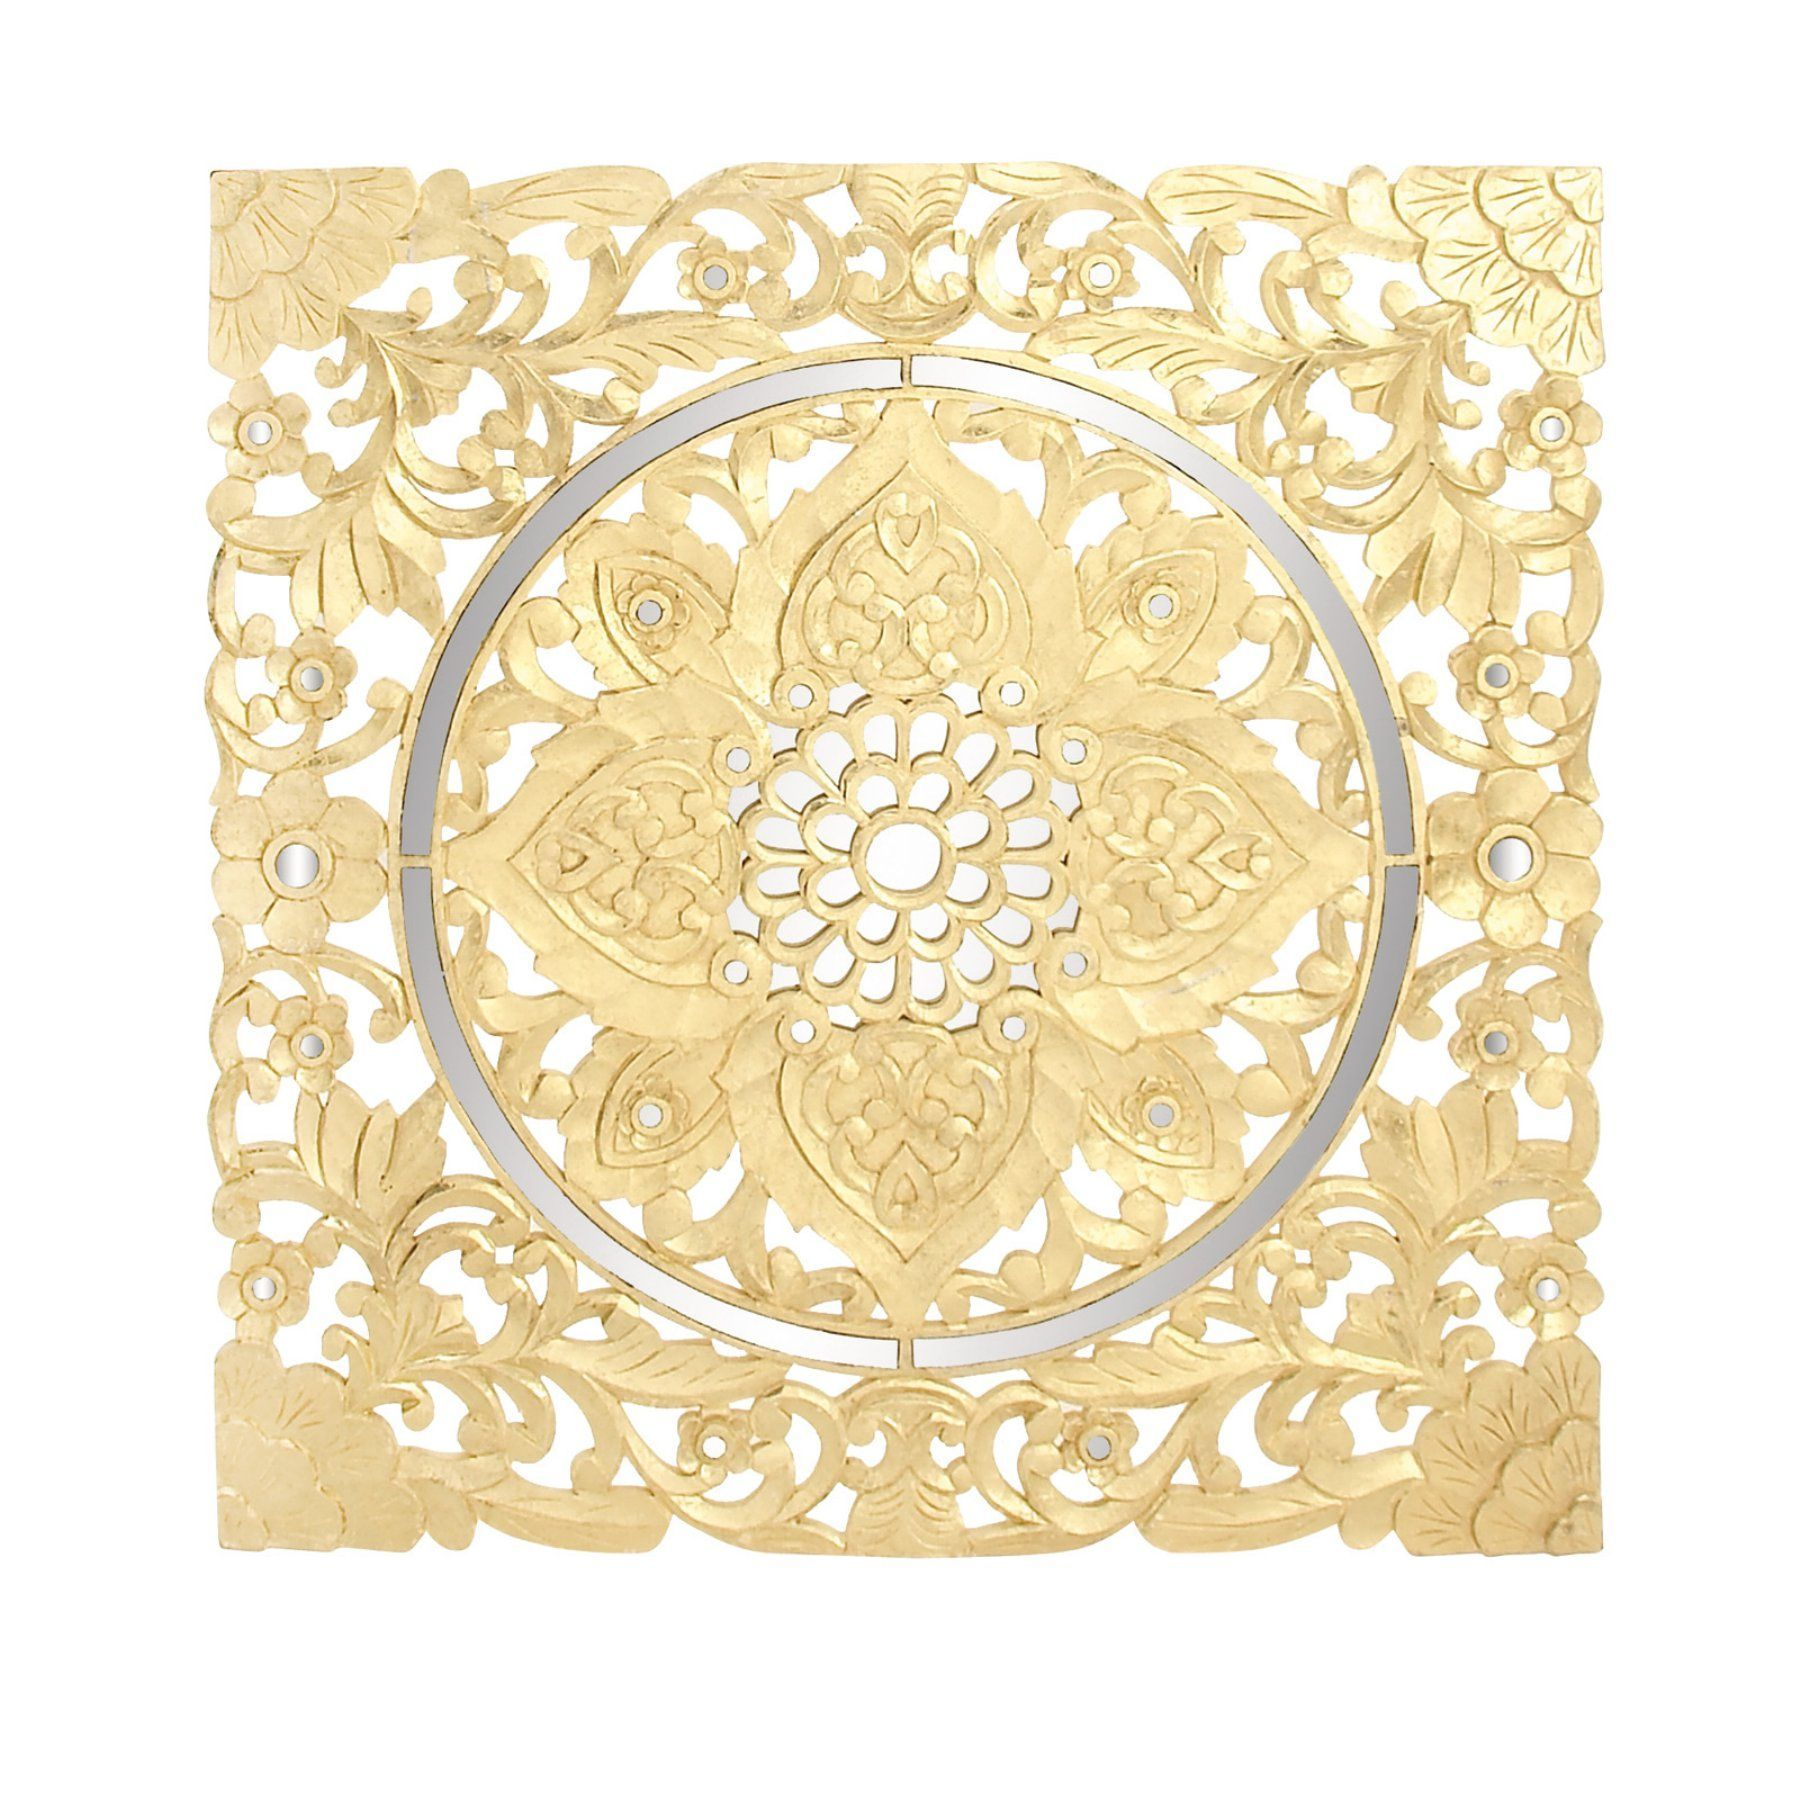 DecMode 47 in. Square Gold Finish Wood Wall Panel with Circular ...